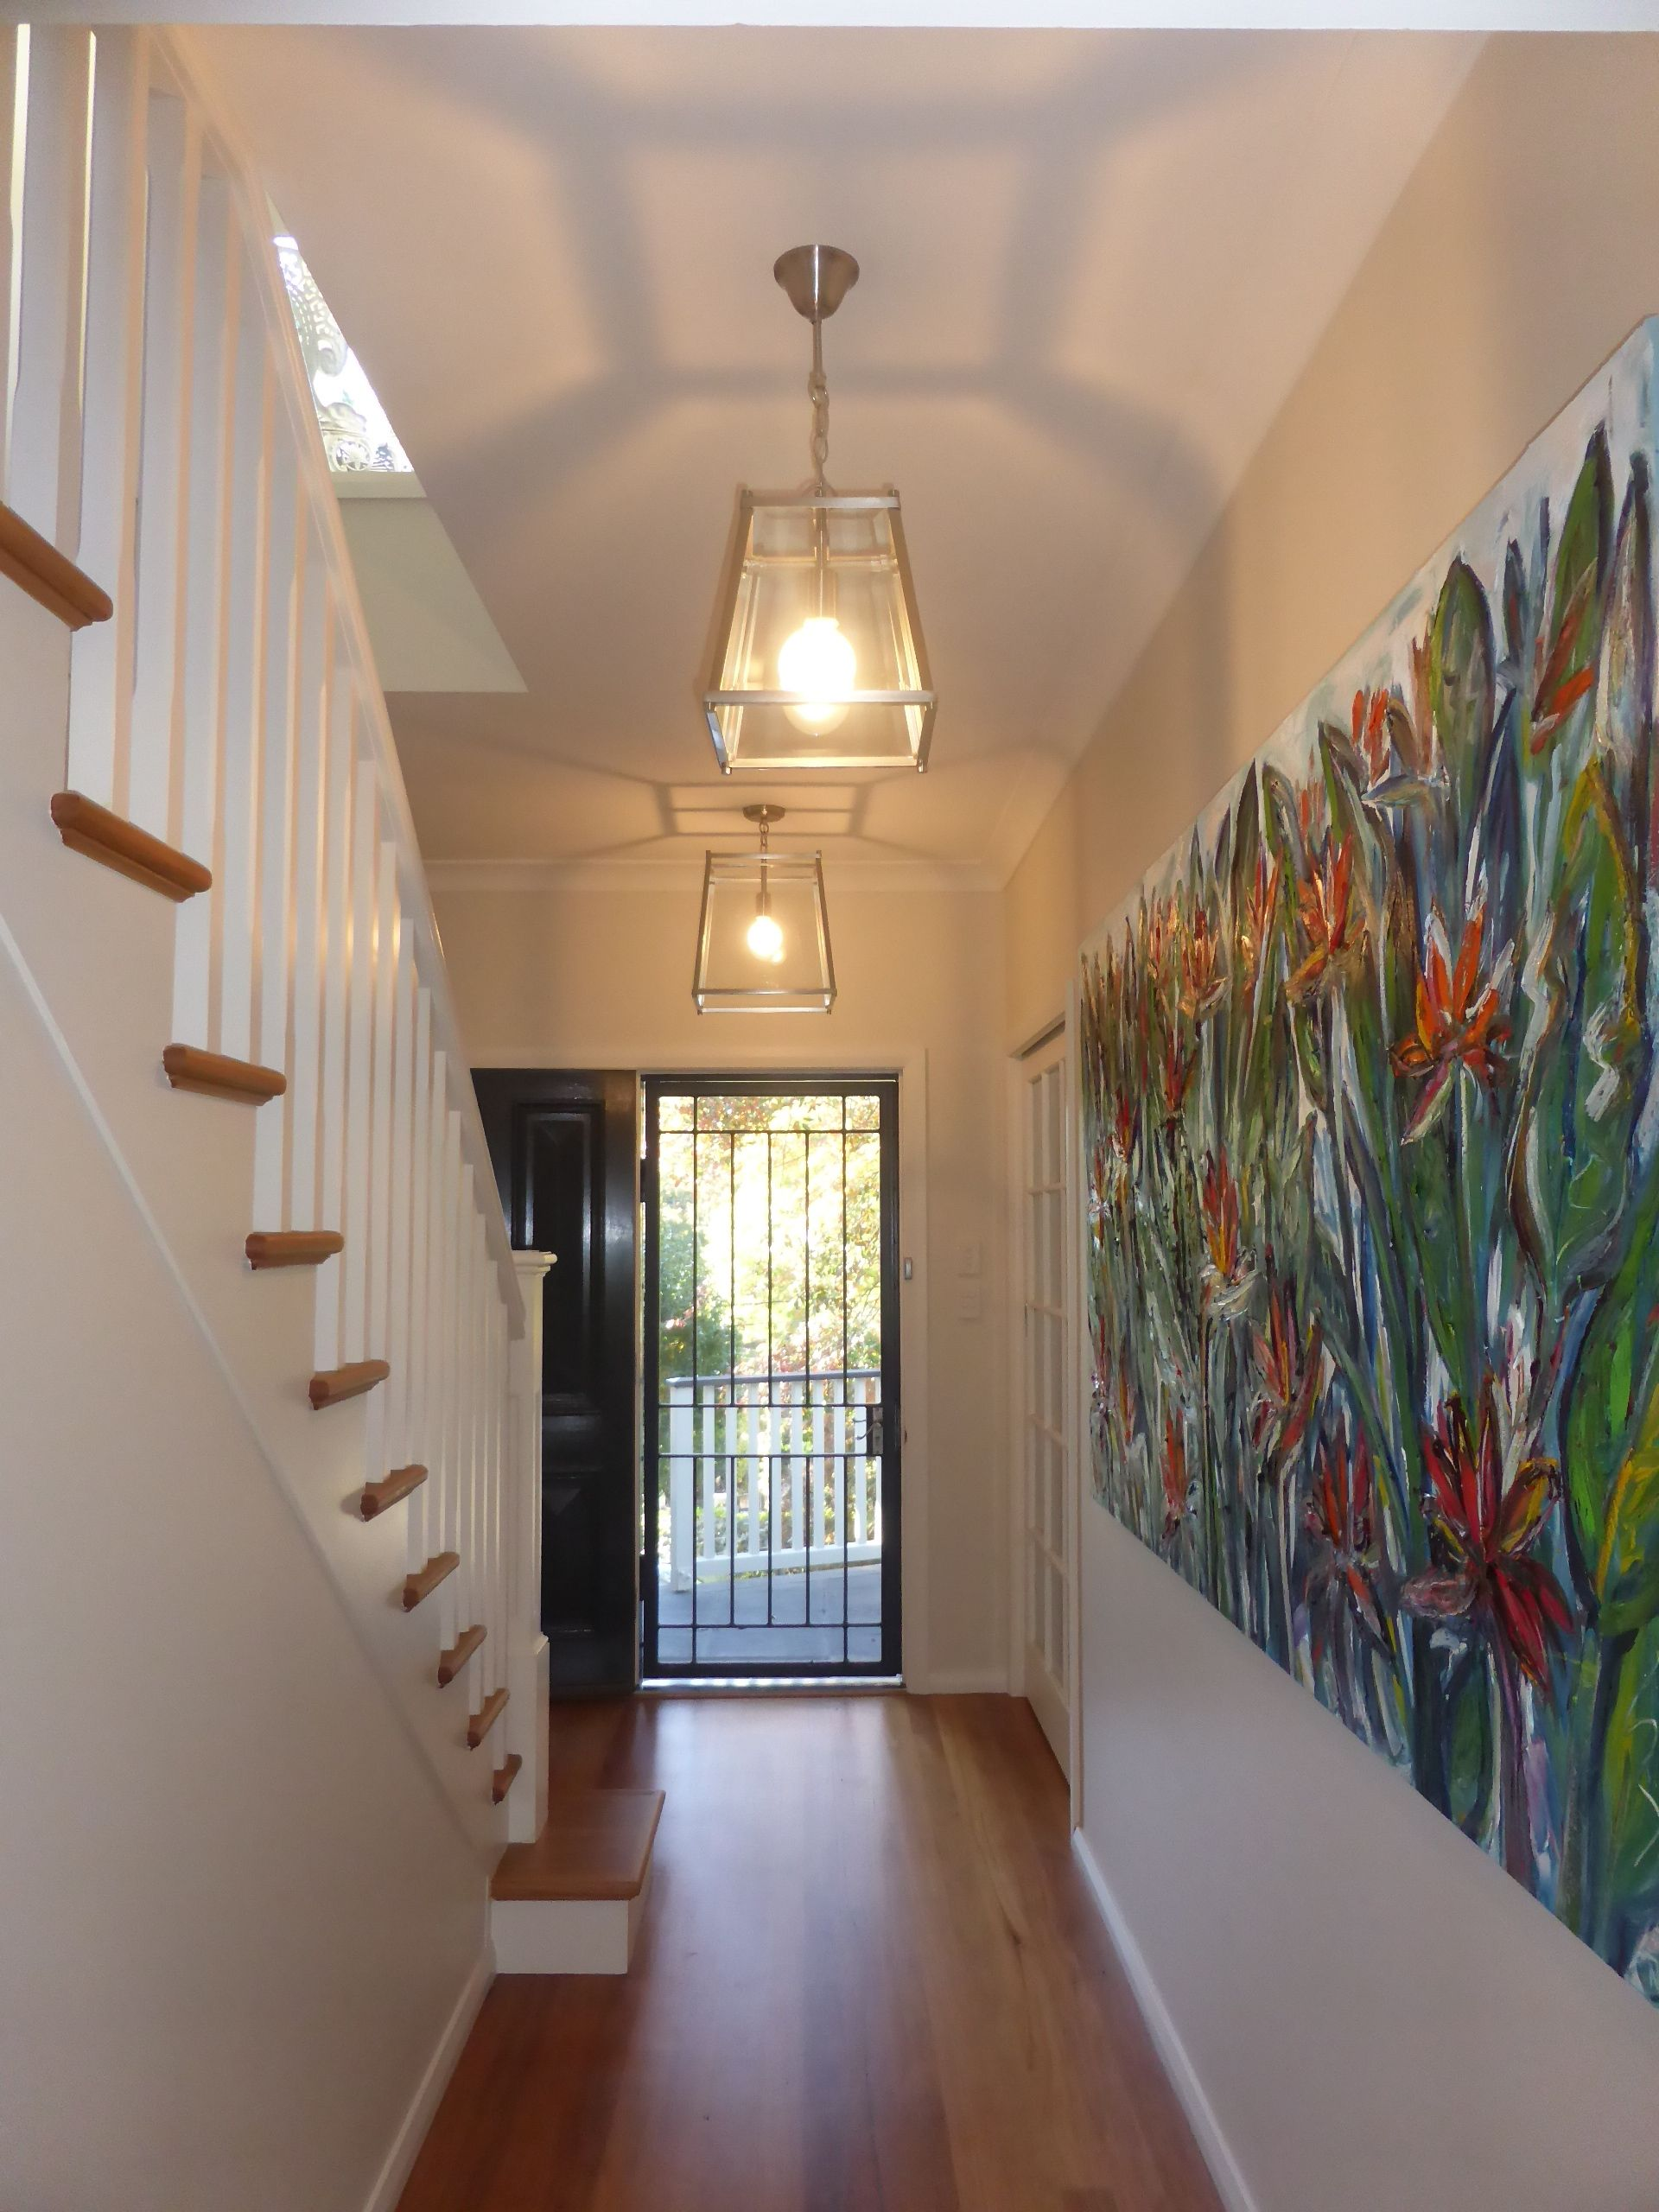 Small entrance hallway slowly getting there adding an extra small entrance hallway slowly getting there adding an extra large pendant light at entrance aloadofball Choice Image